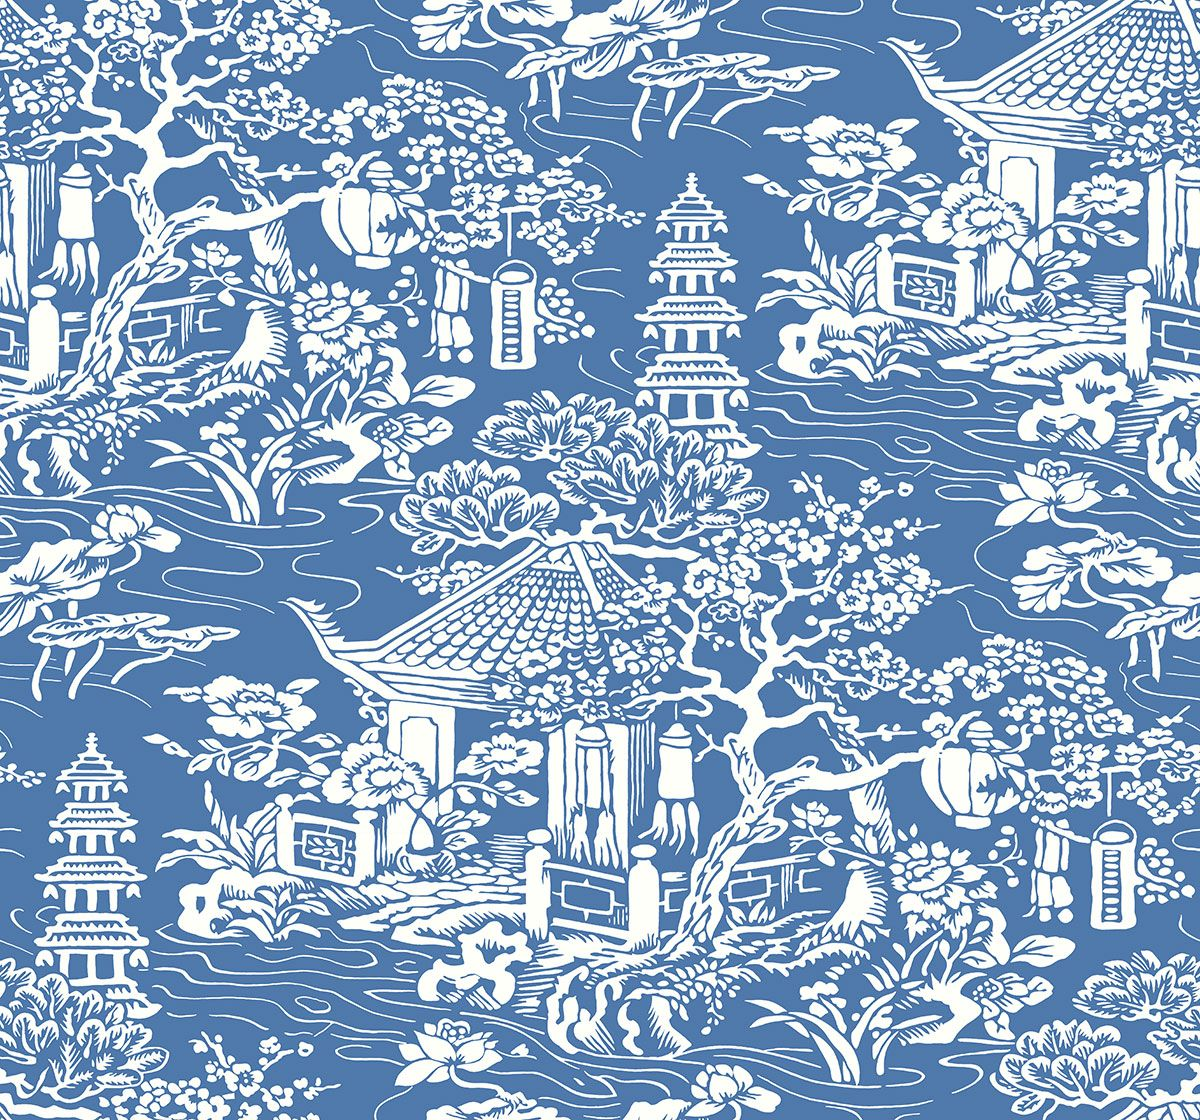 Toile Blue & White Wallpaper makes a statement. From the Midsummer Breeze range. http://decoratingheaven.com.au/colourful-wallpaper-midsummer-breeze/